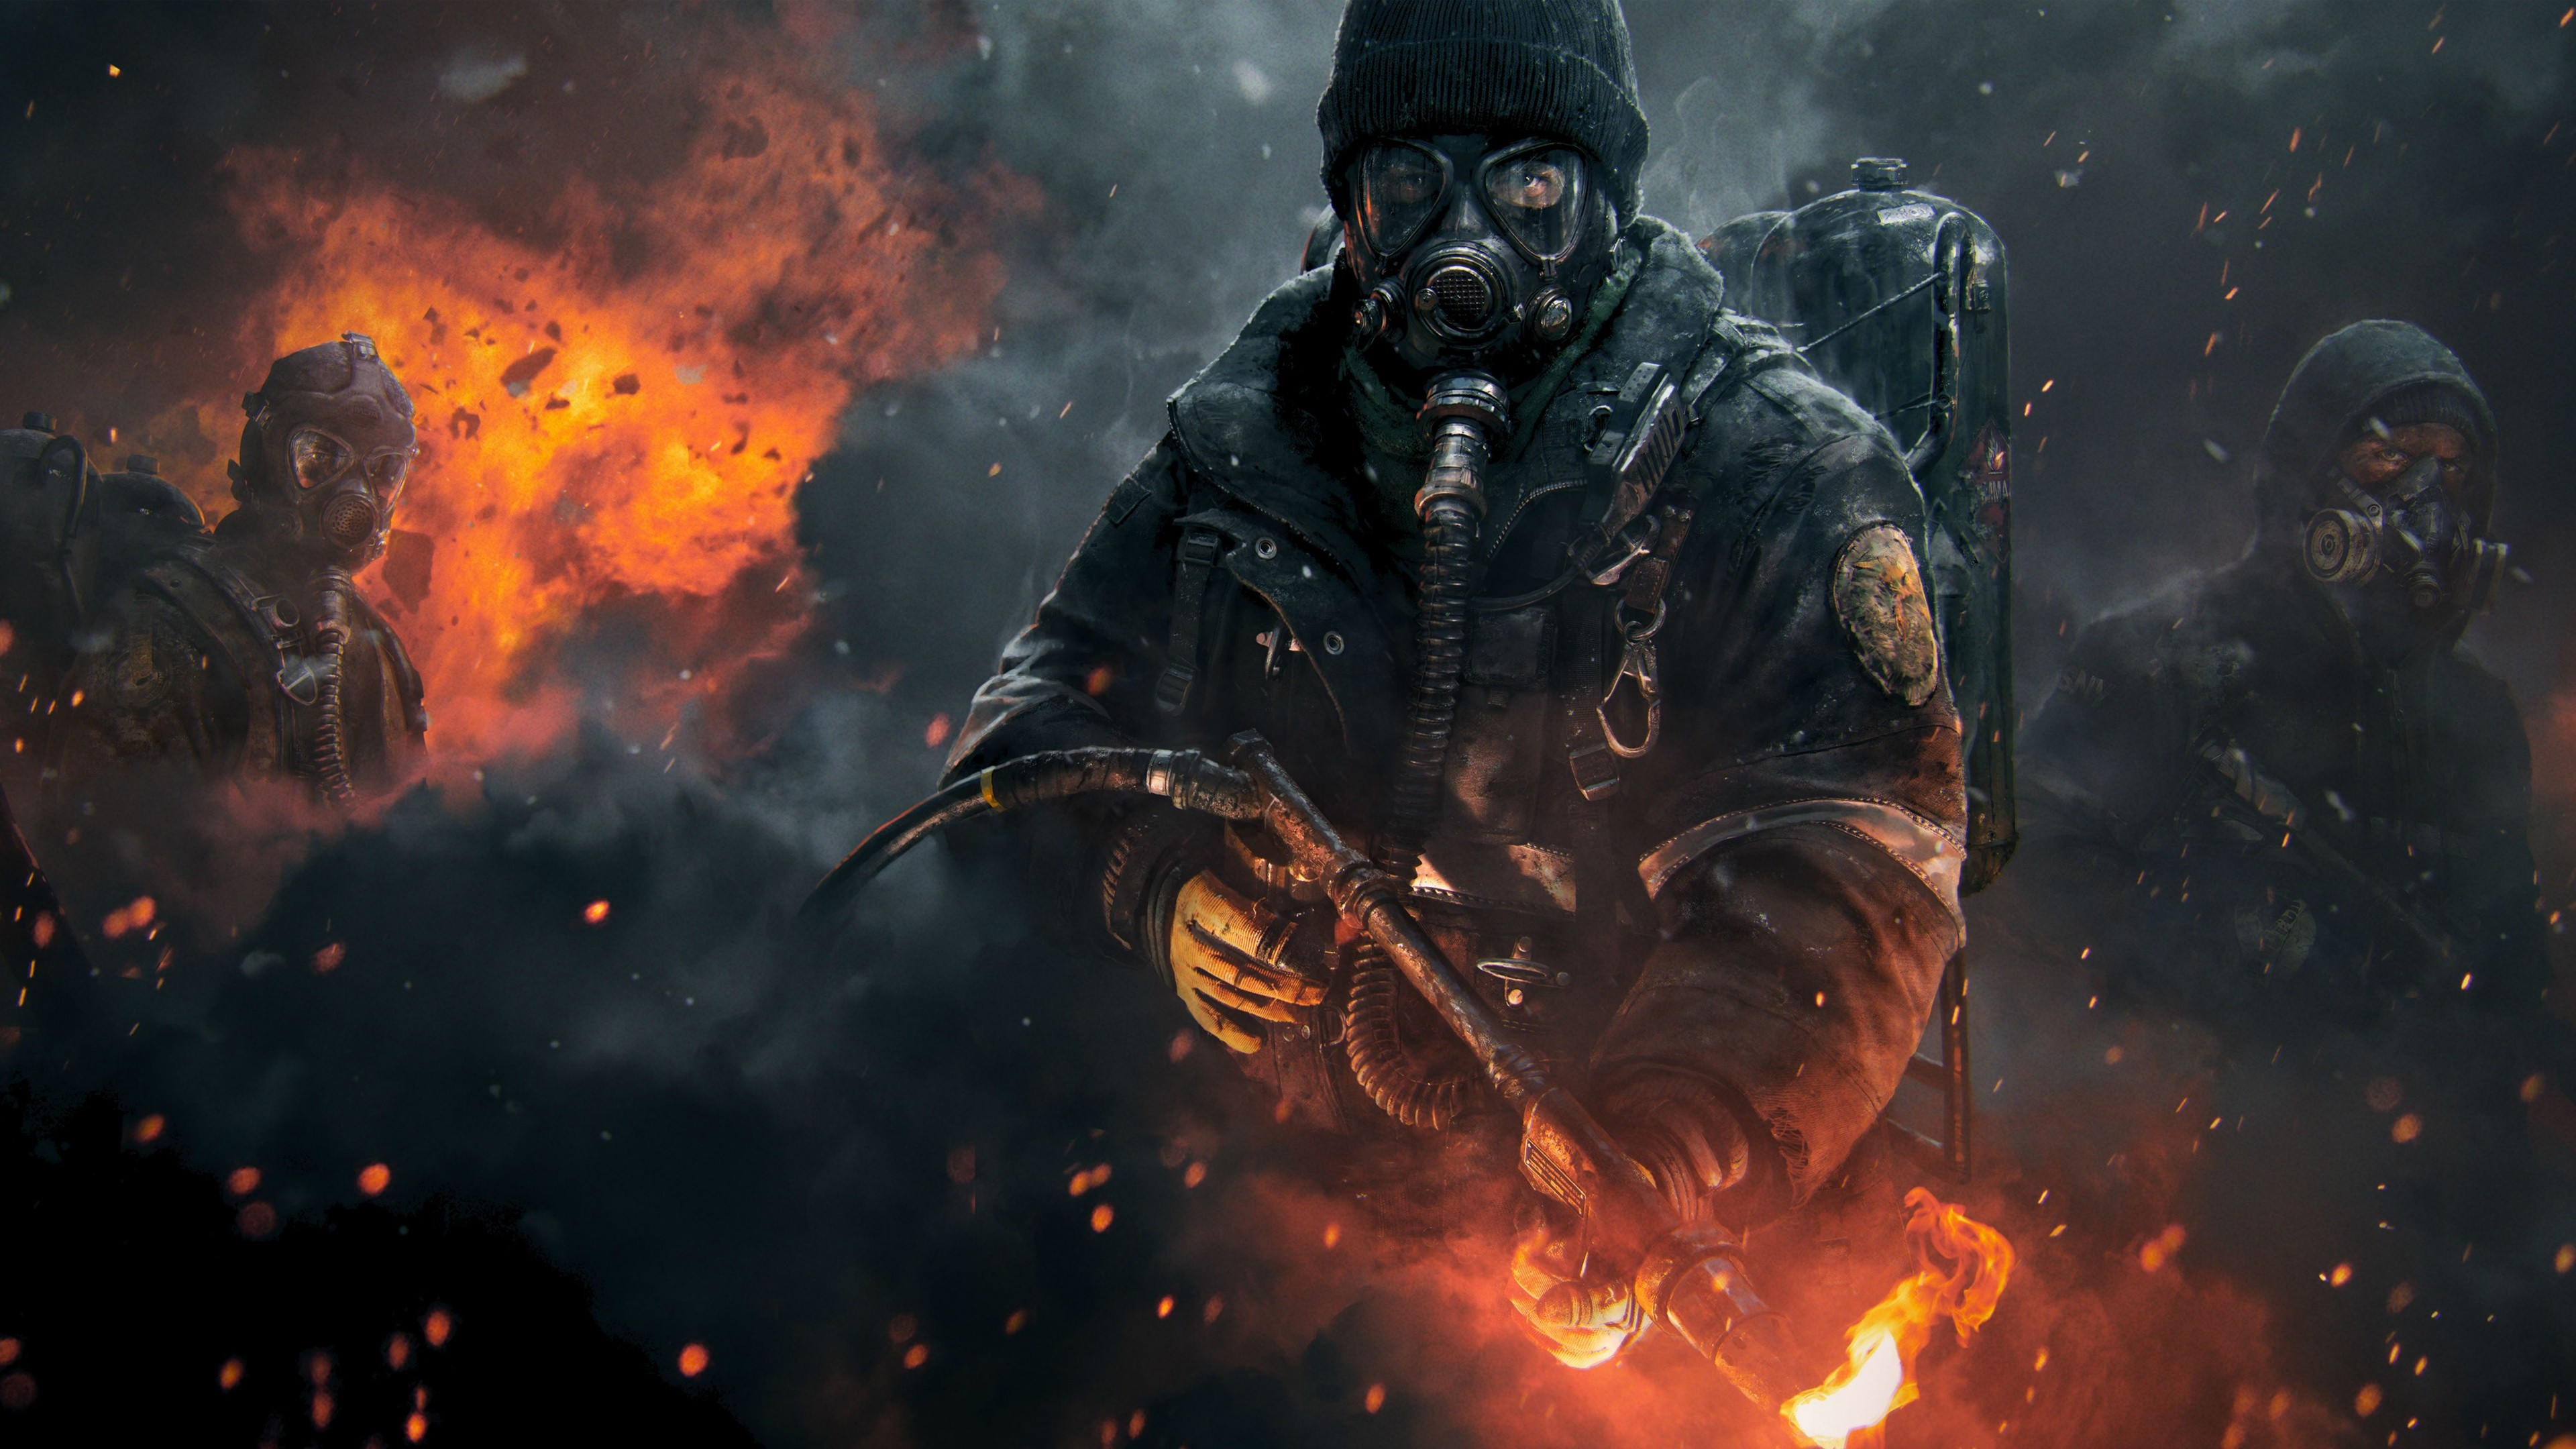 Tom Clancy's The Division Wallpapers   HD Wallpapers